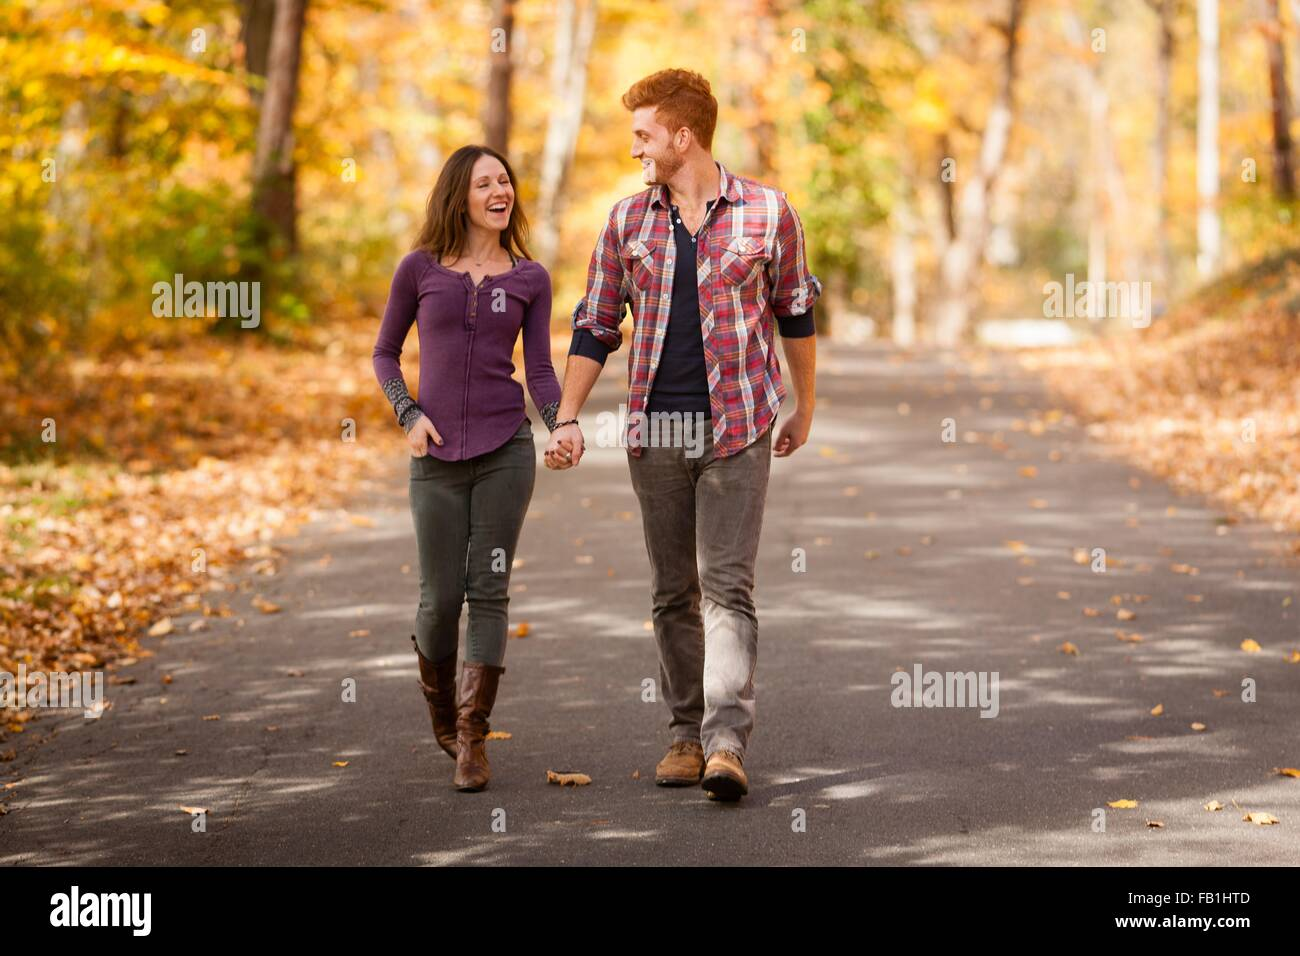 Romantic young couple strolling in autumn forest Stock Photo